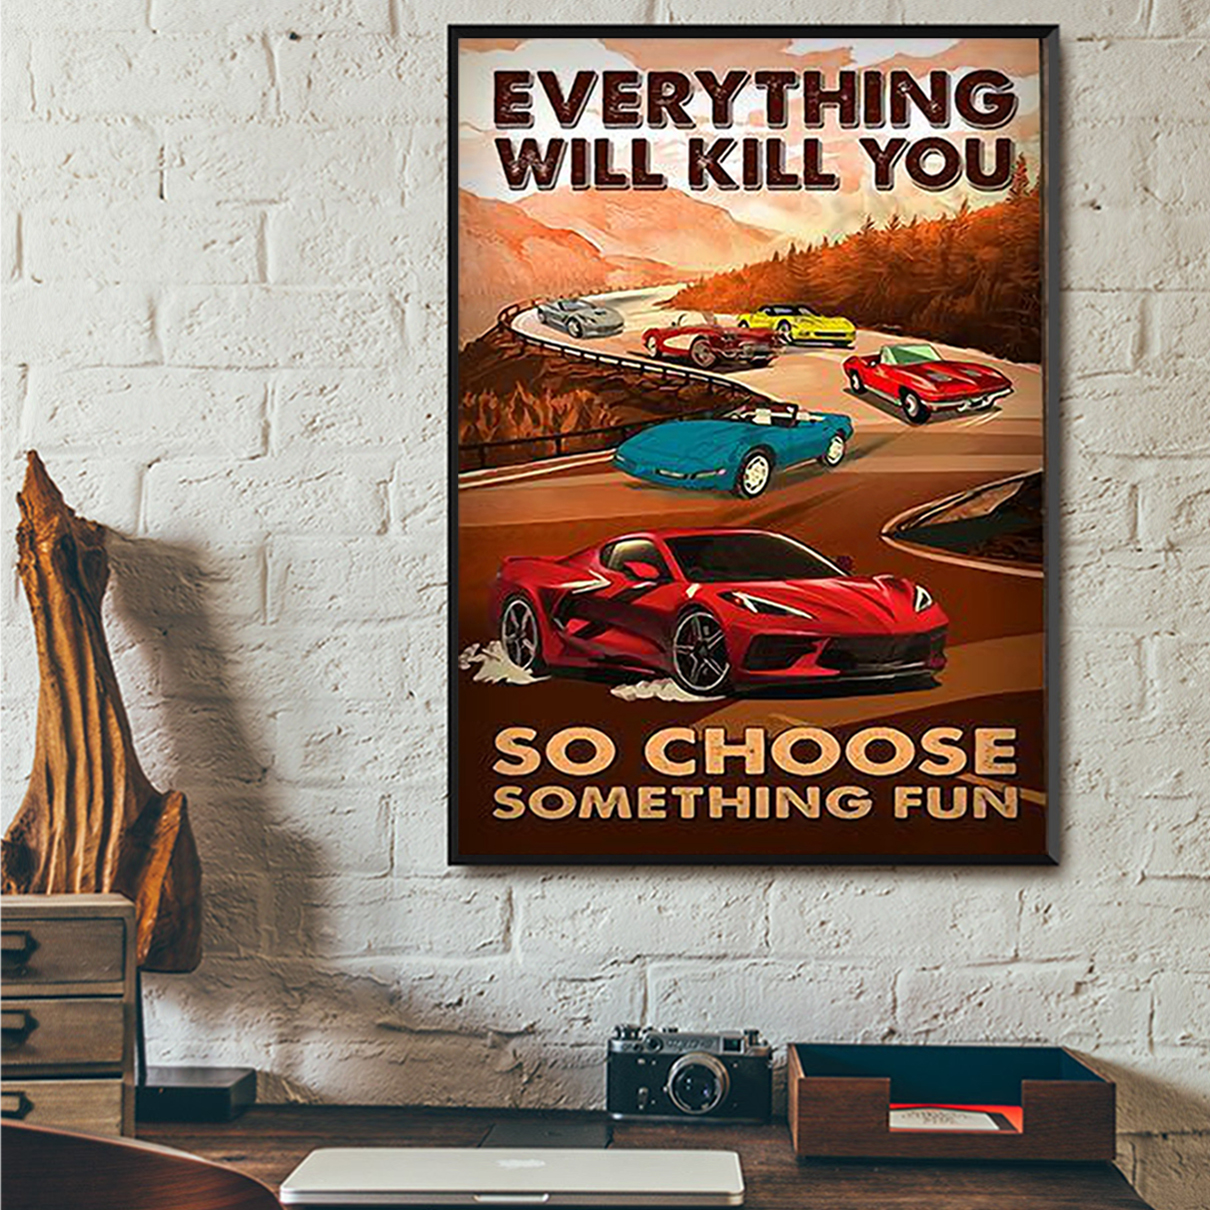 Corvette everything will kill you so choose something fun poster A2